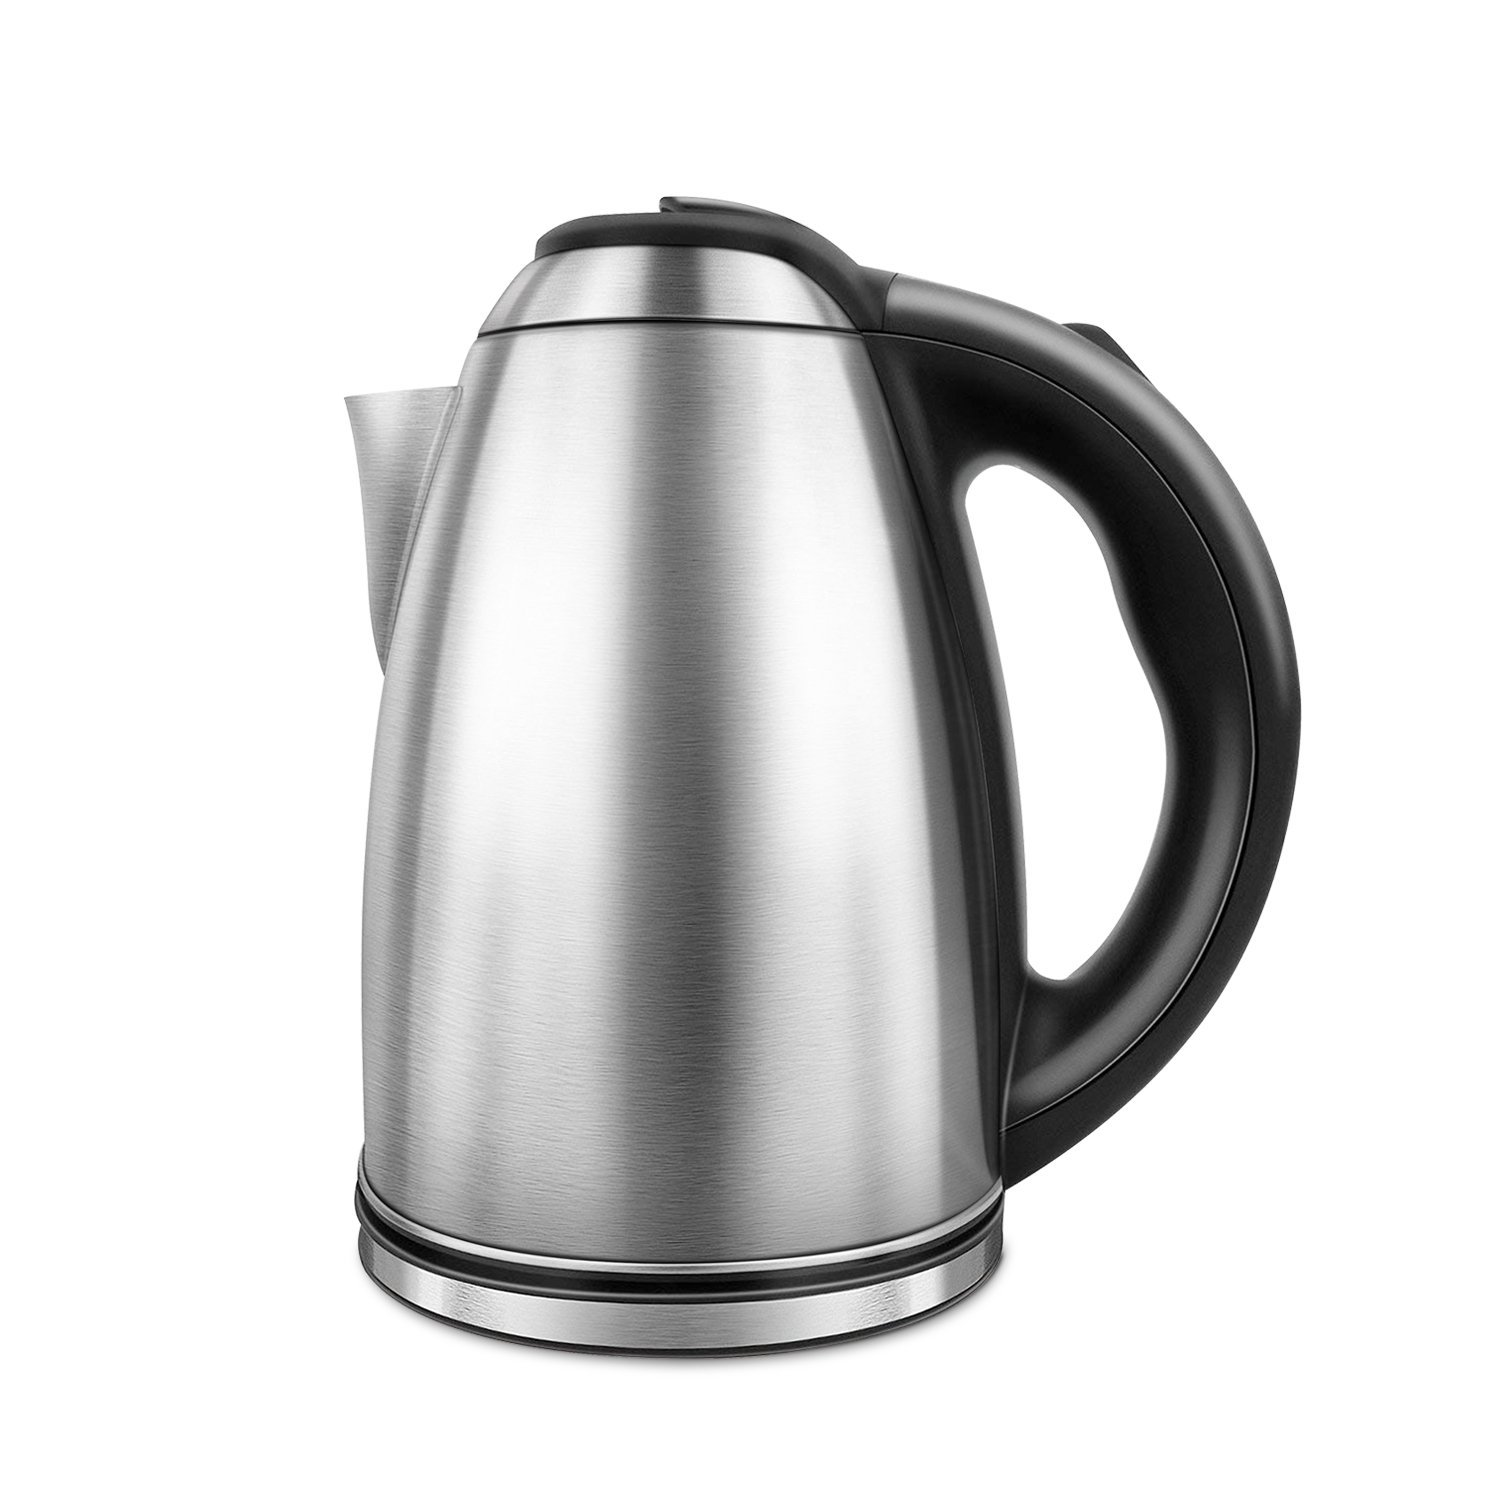 Electric Kettle, Hot Water Kettle 1.8 Liter, Stainless Steel Cordless Tea Kettle 1200W with Auto Shut-off, Boil-Dry Protection, Electric Tea Pot Perfect For Brewing Teas, Coffee By Túasia Coffee By Túasia